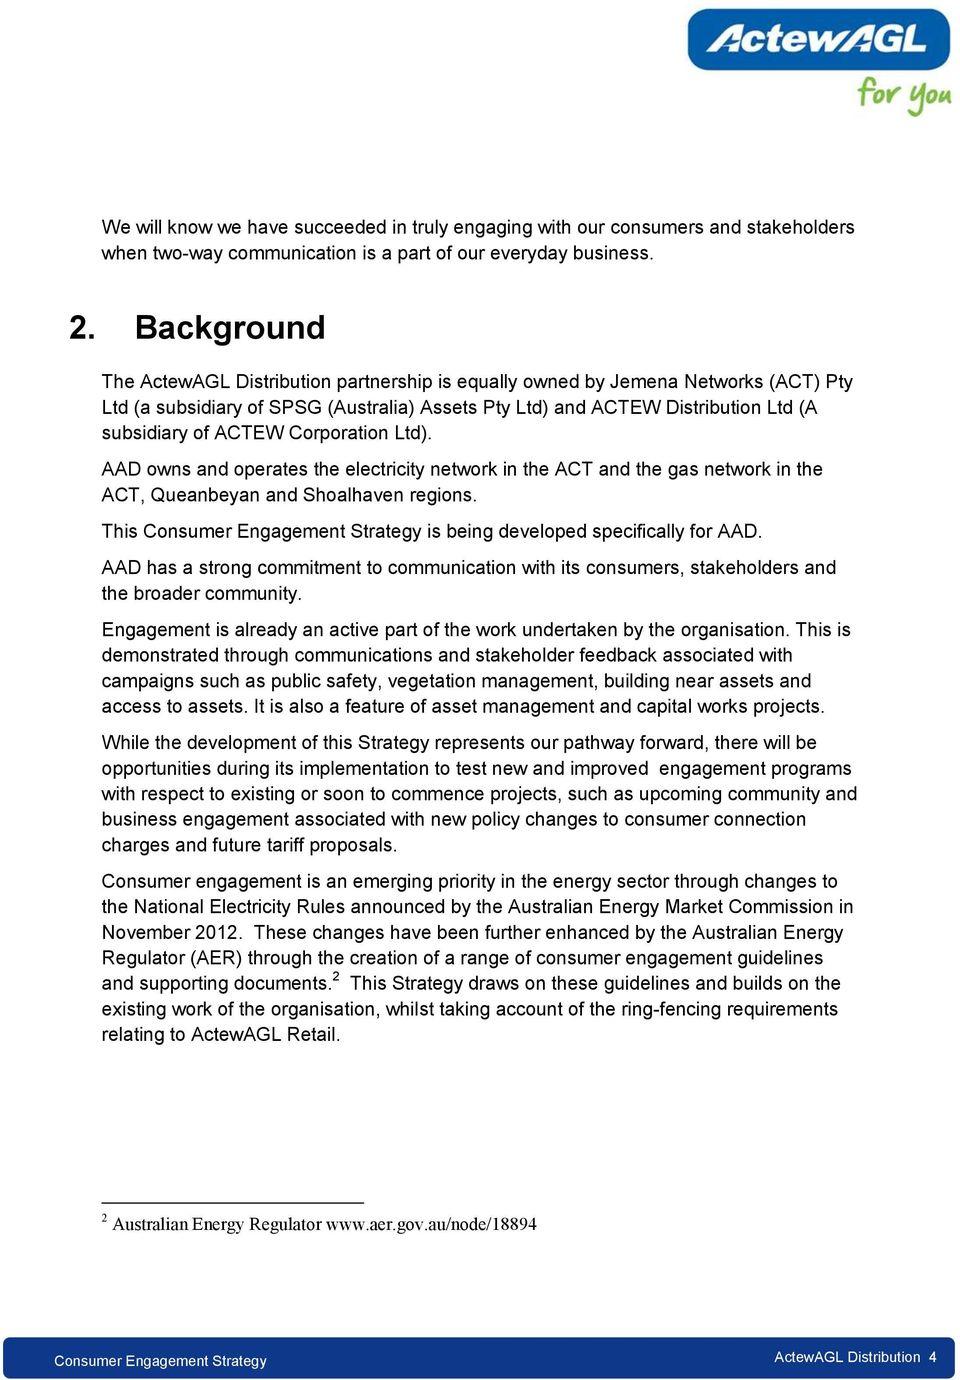 Corporation Ltd). AAD owns and operates the electricity network in the ACT and the gas network in the ACT, Queanbeyan and Shoalhaven regions. This is being developed specifically for AAD.